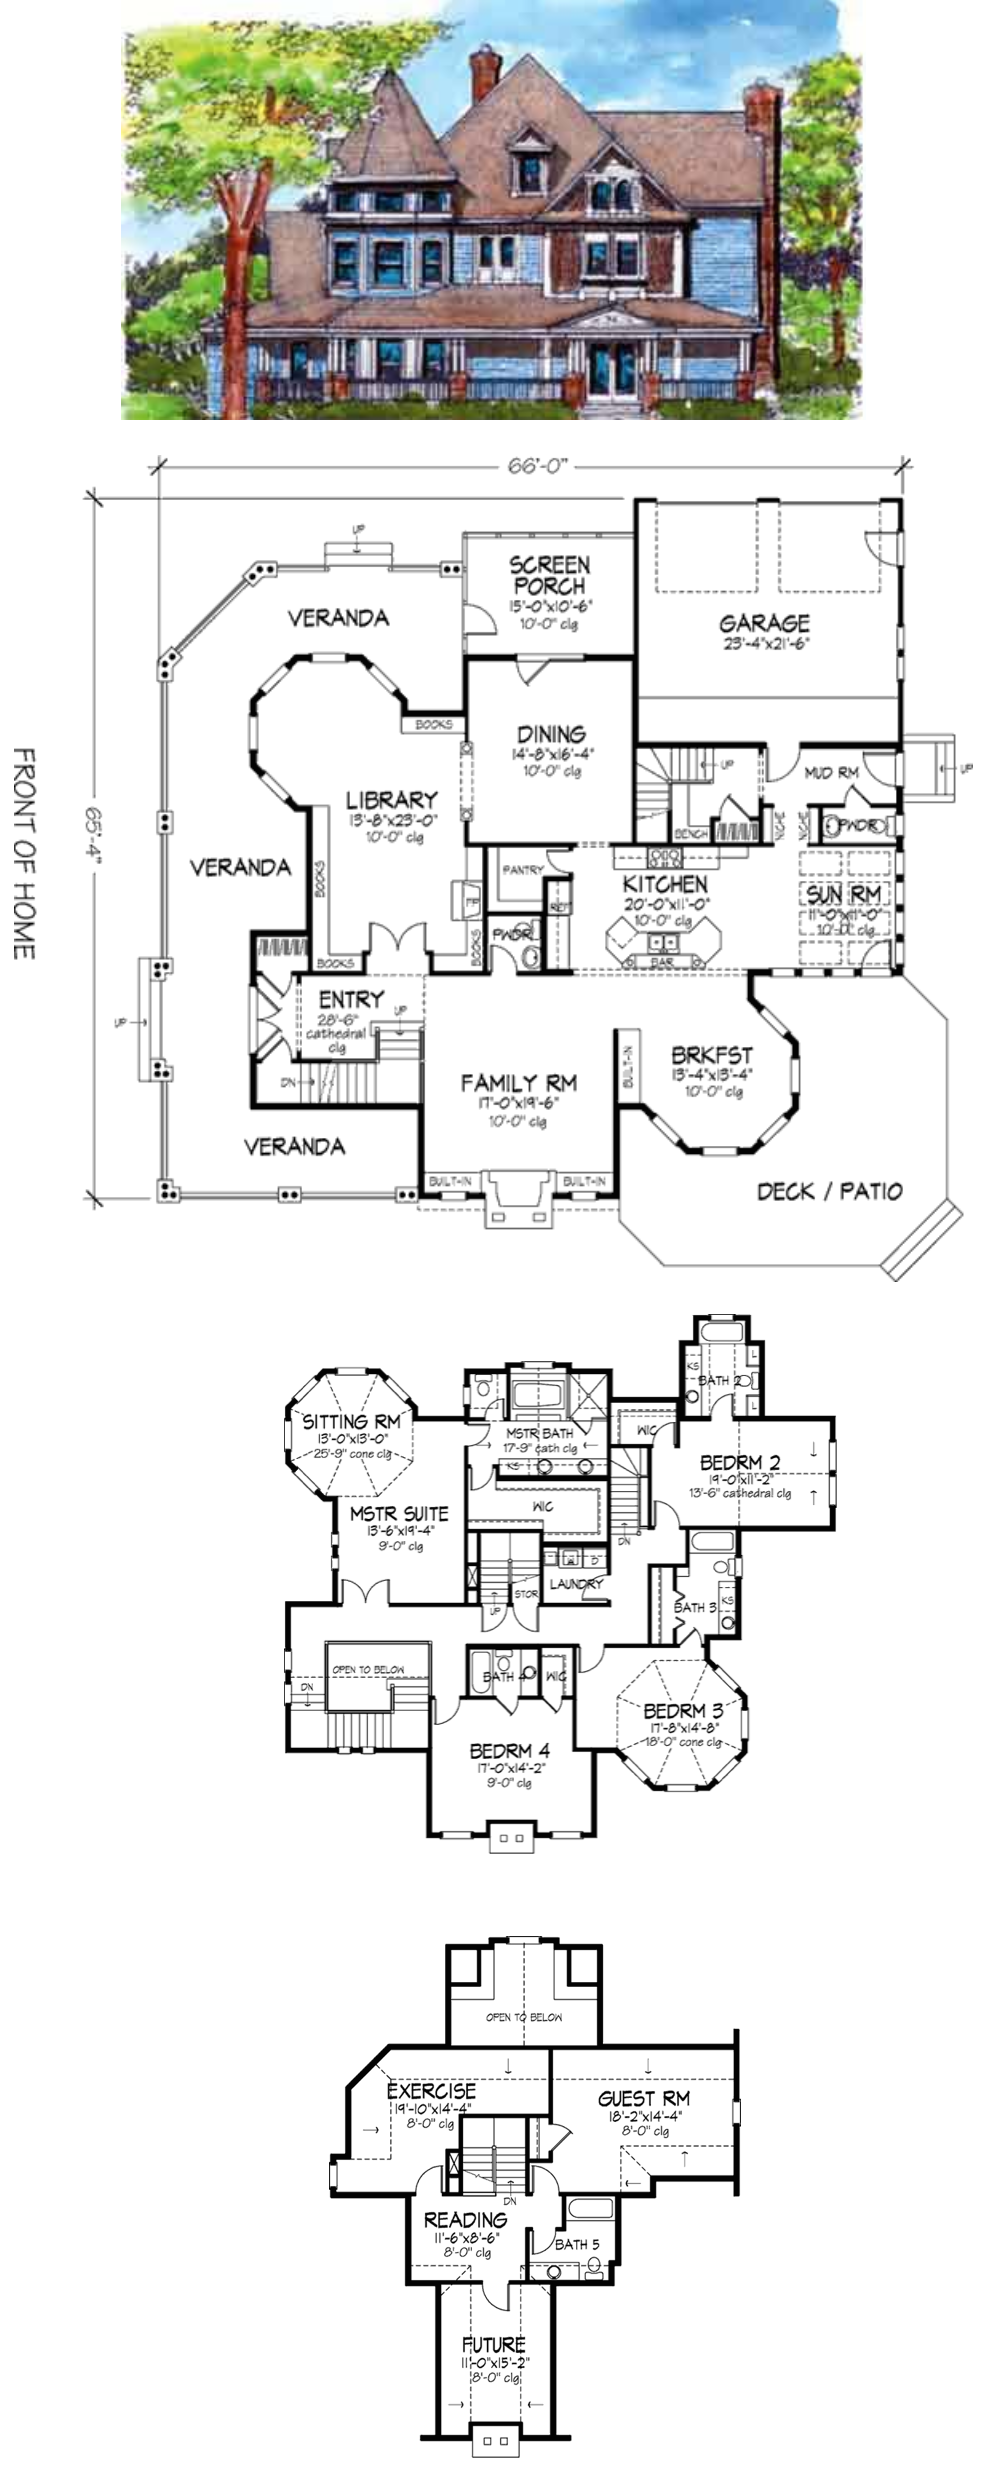 Classic Victorian Love It All But Definitely Too Big Probably Want It A Bit More Country For A More Victorian House Plans House Blueprints Dream House Plans